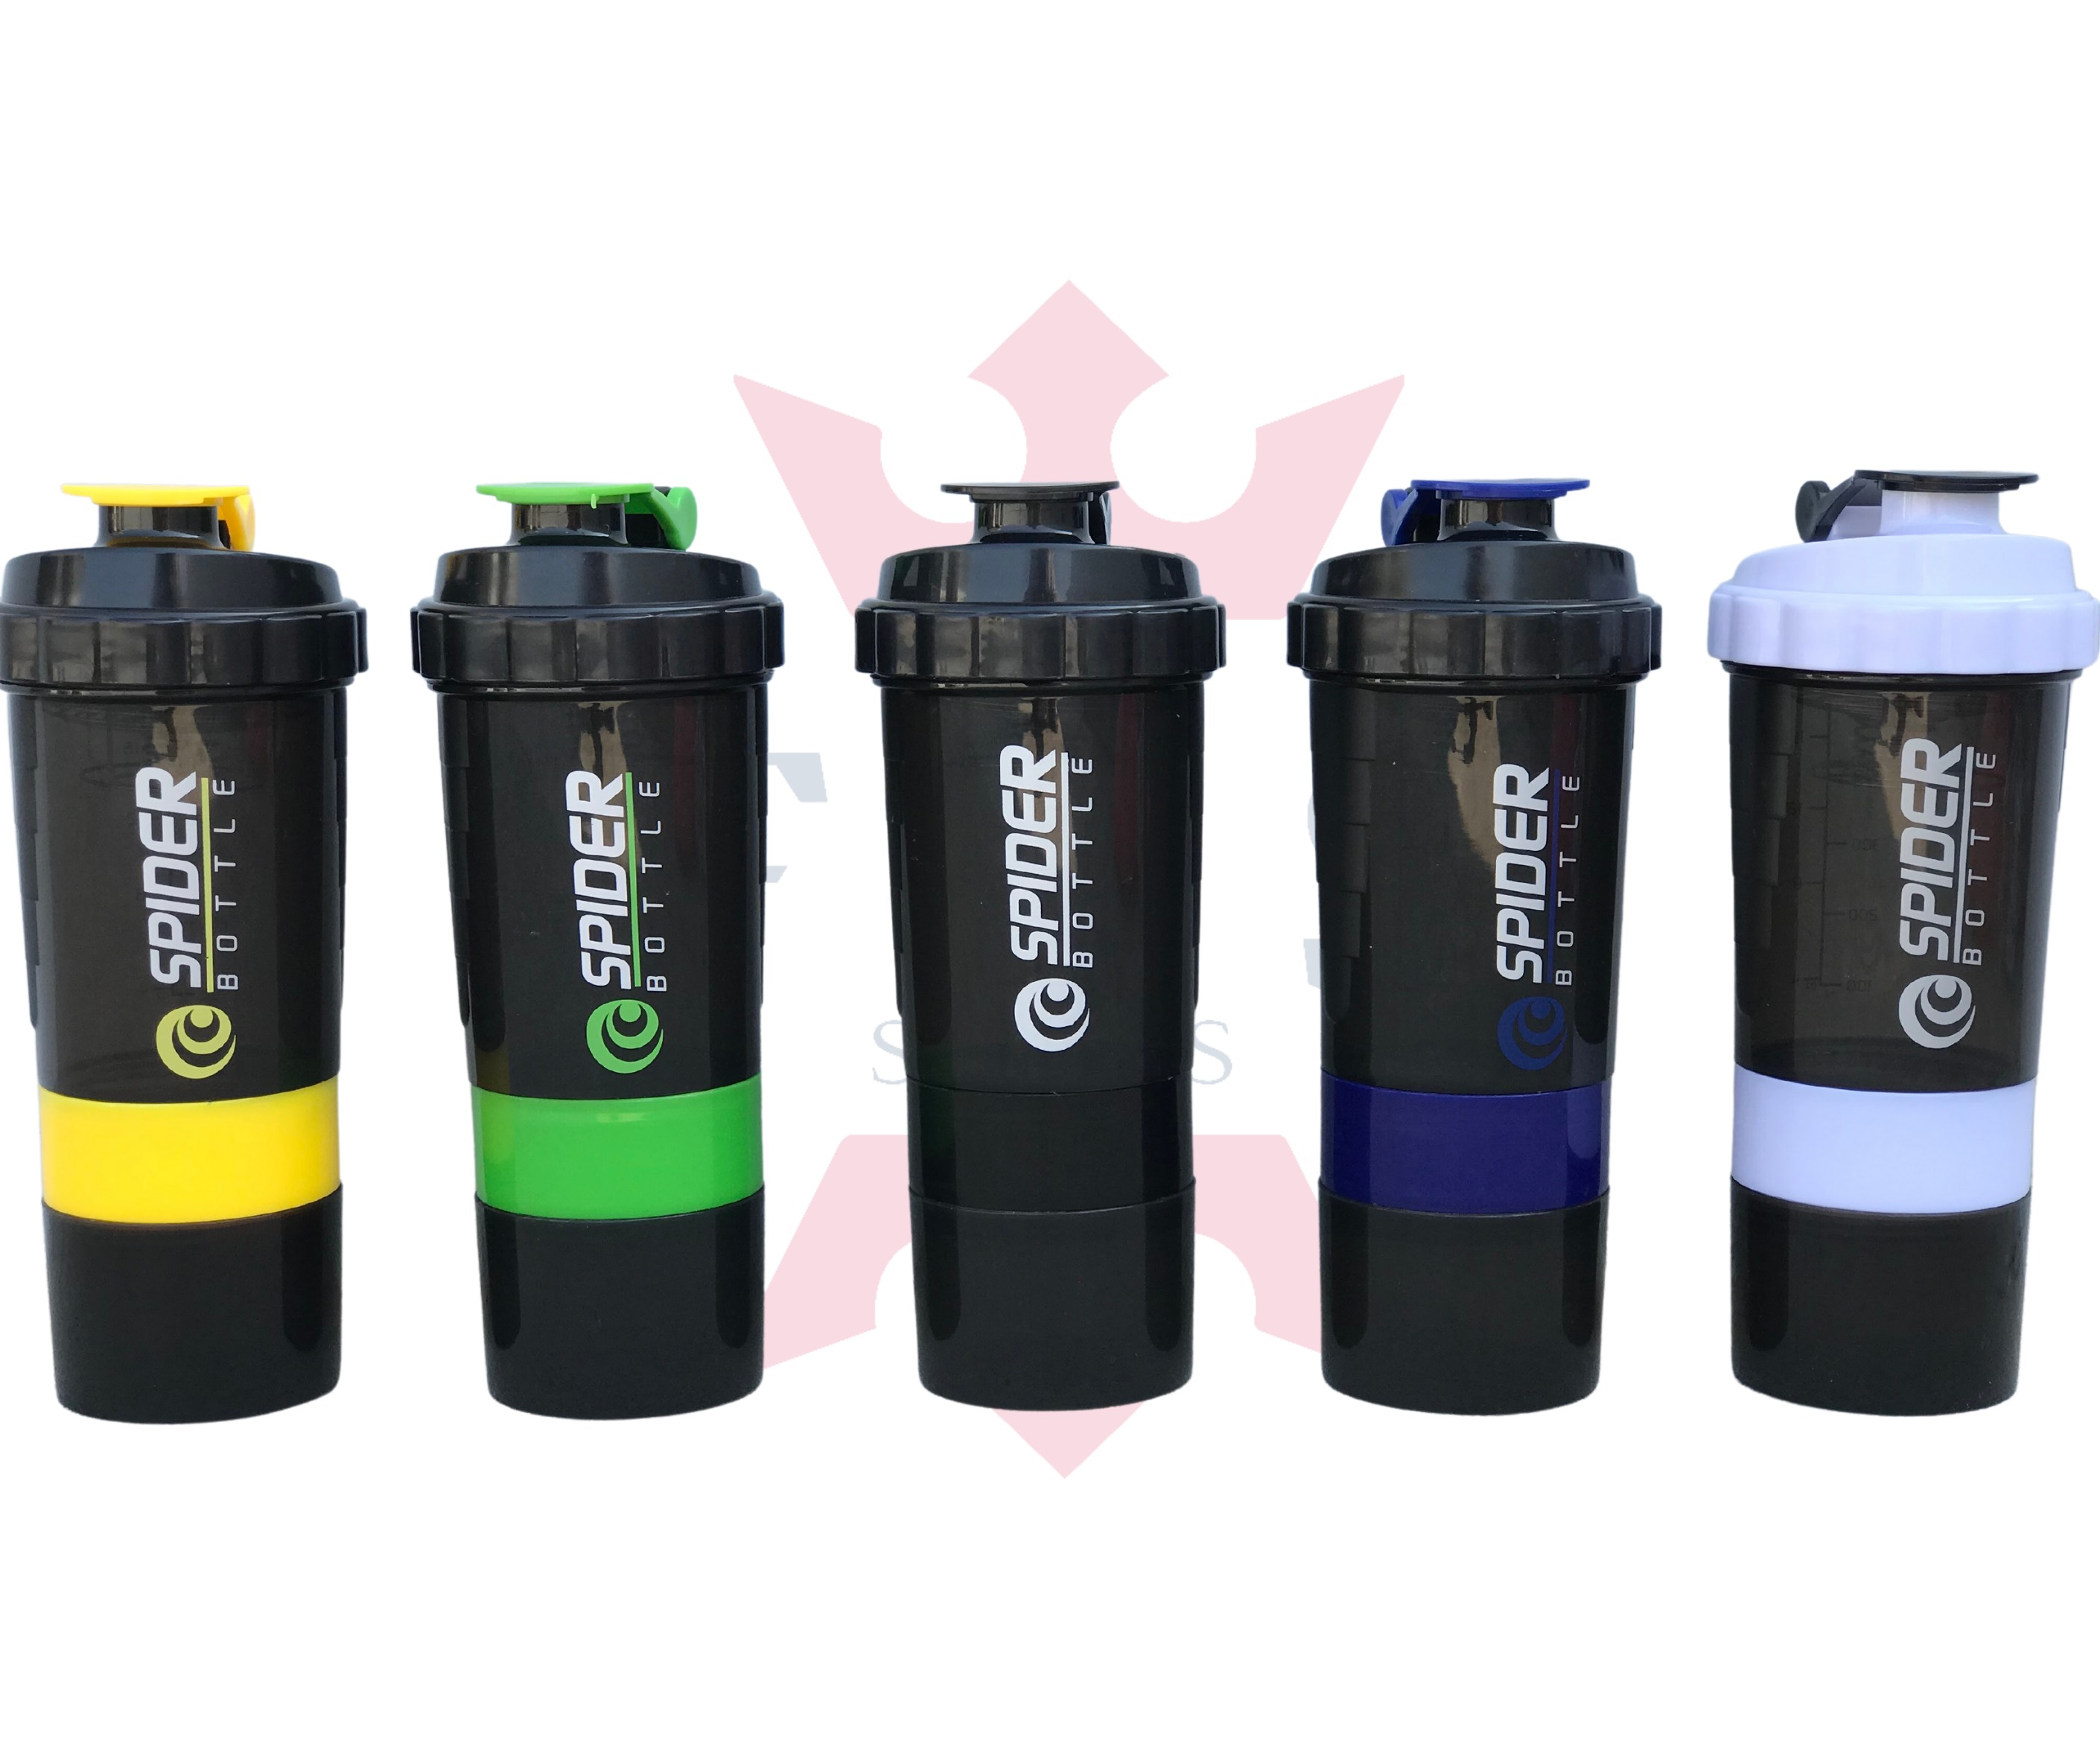 3-in-1 Spider Gym Shaker bottle Pro Cyclone Shaker 500ml with Extra Compartment, 100% Leakproof Guarantee, Ideal for Protein, Pre-workout and BCAAs, BPA Free Material Sipper Bottle